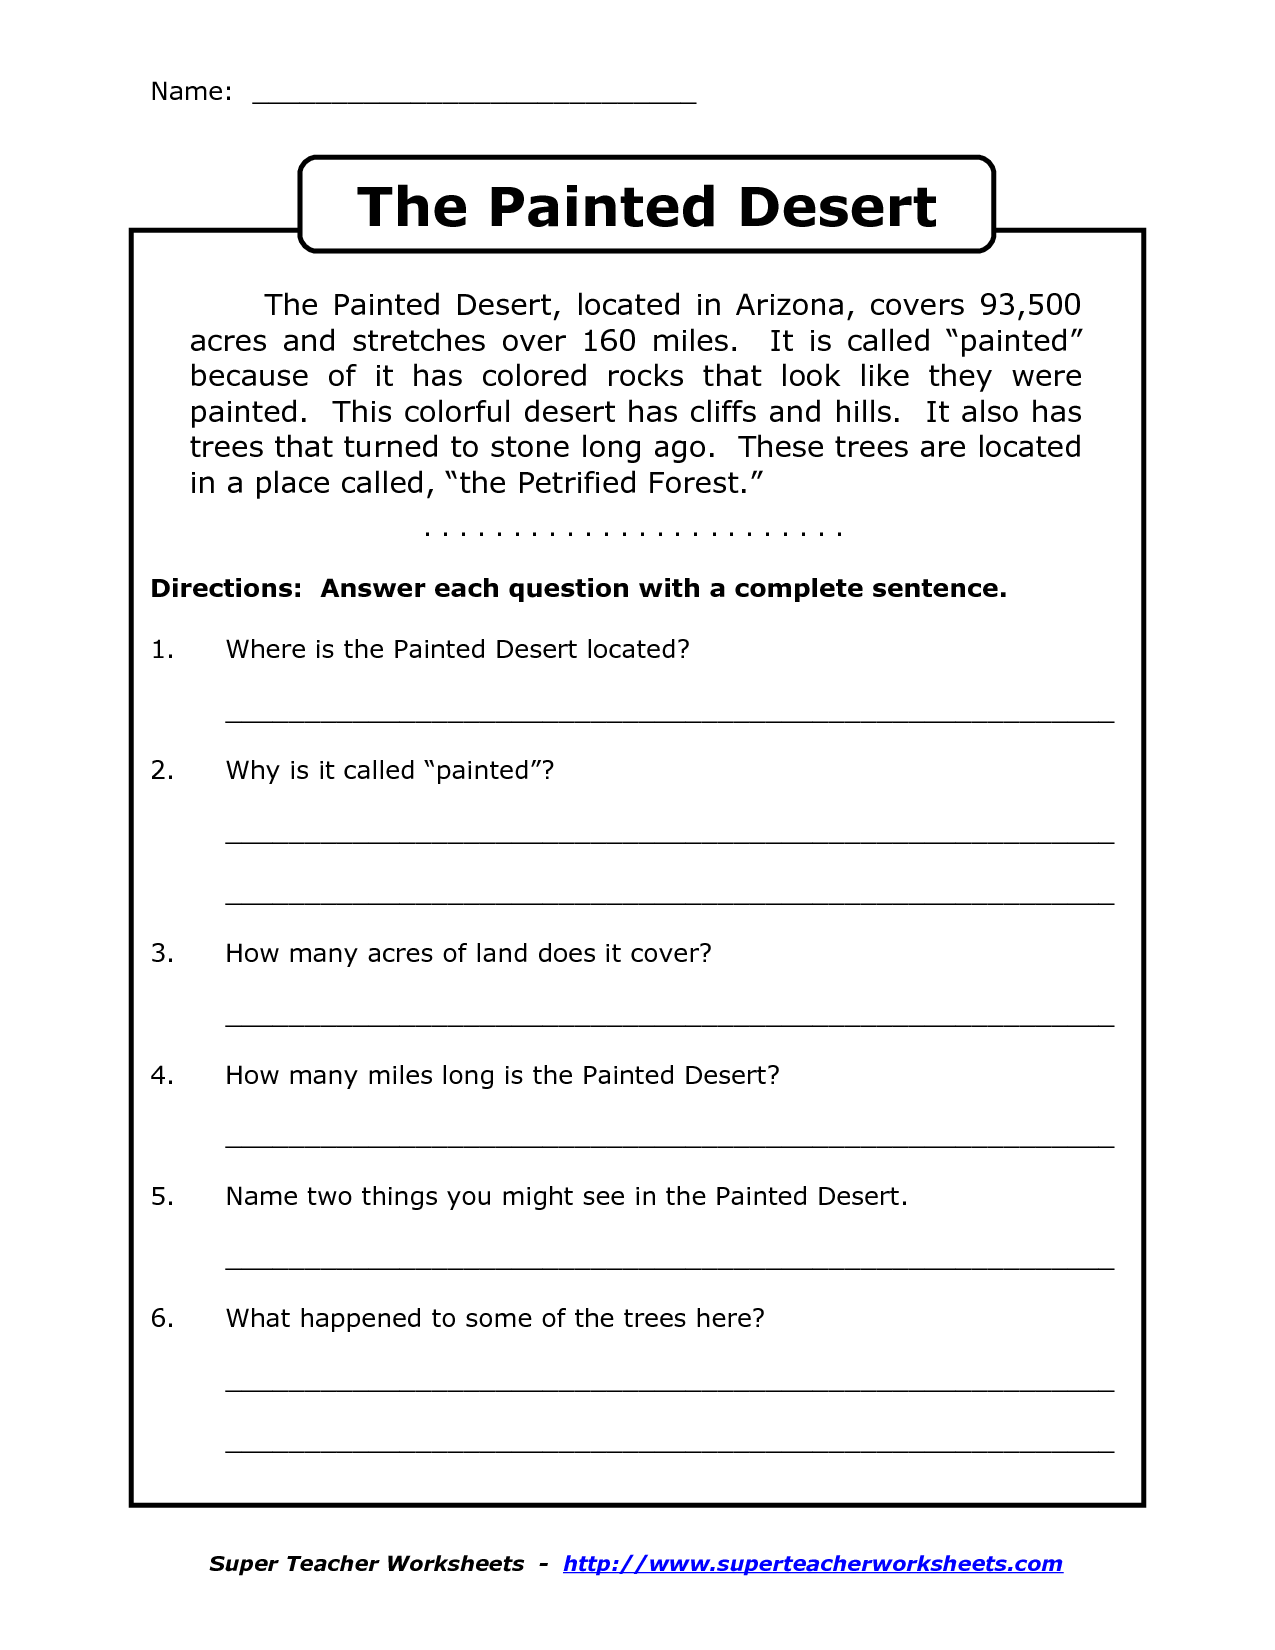 worksheet Reading Passages For 4th Grade reading worksheets for 4th grade comprehension 3 name the painted desert